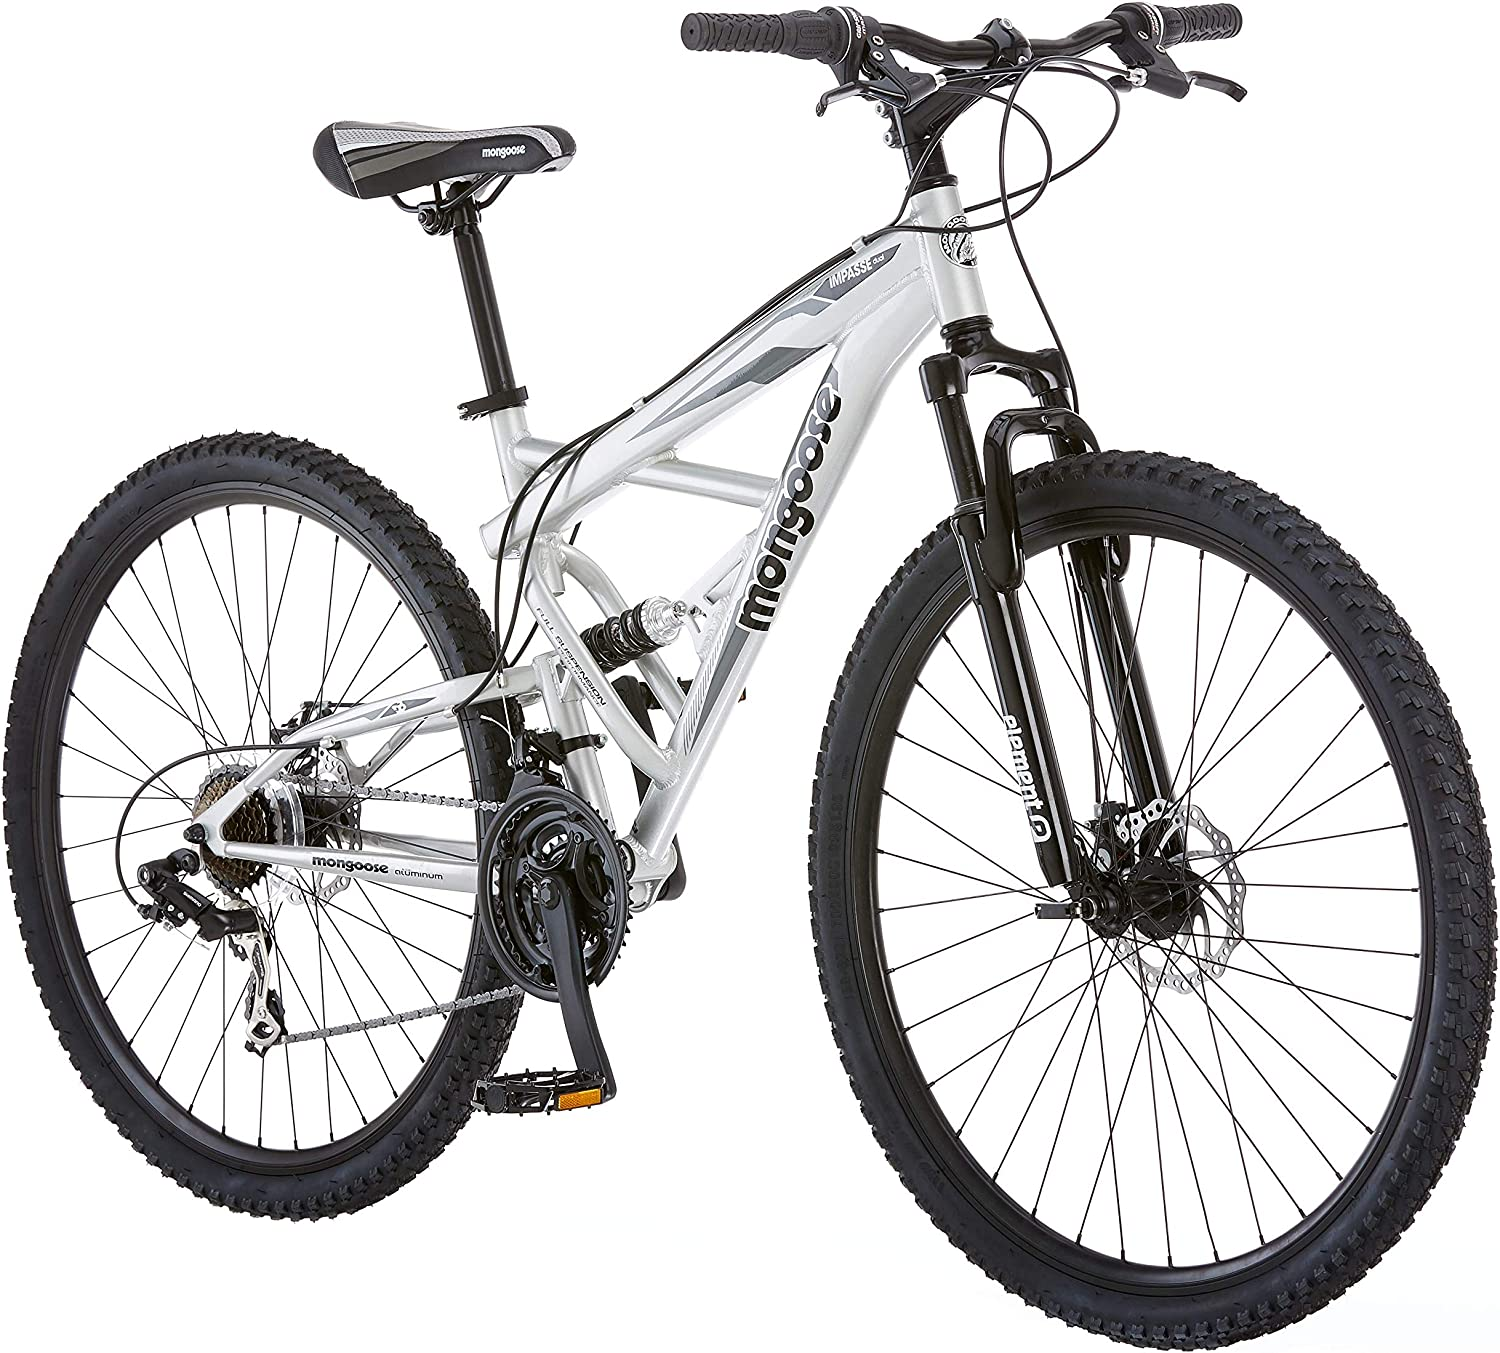 best mountain bike under 500: Mongoose Impasse 29-inch Men's Mountain Bike